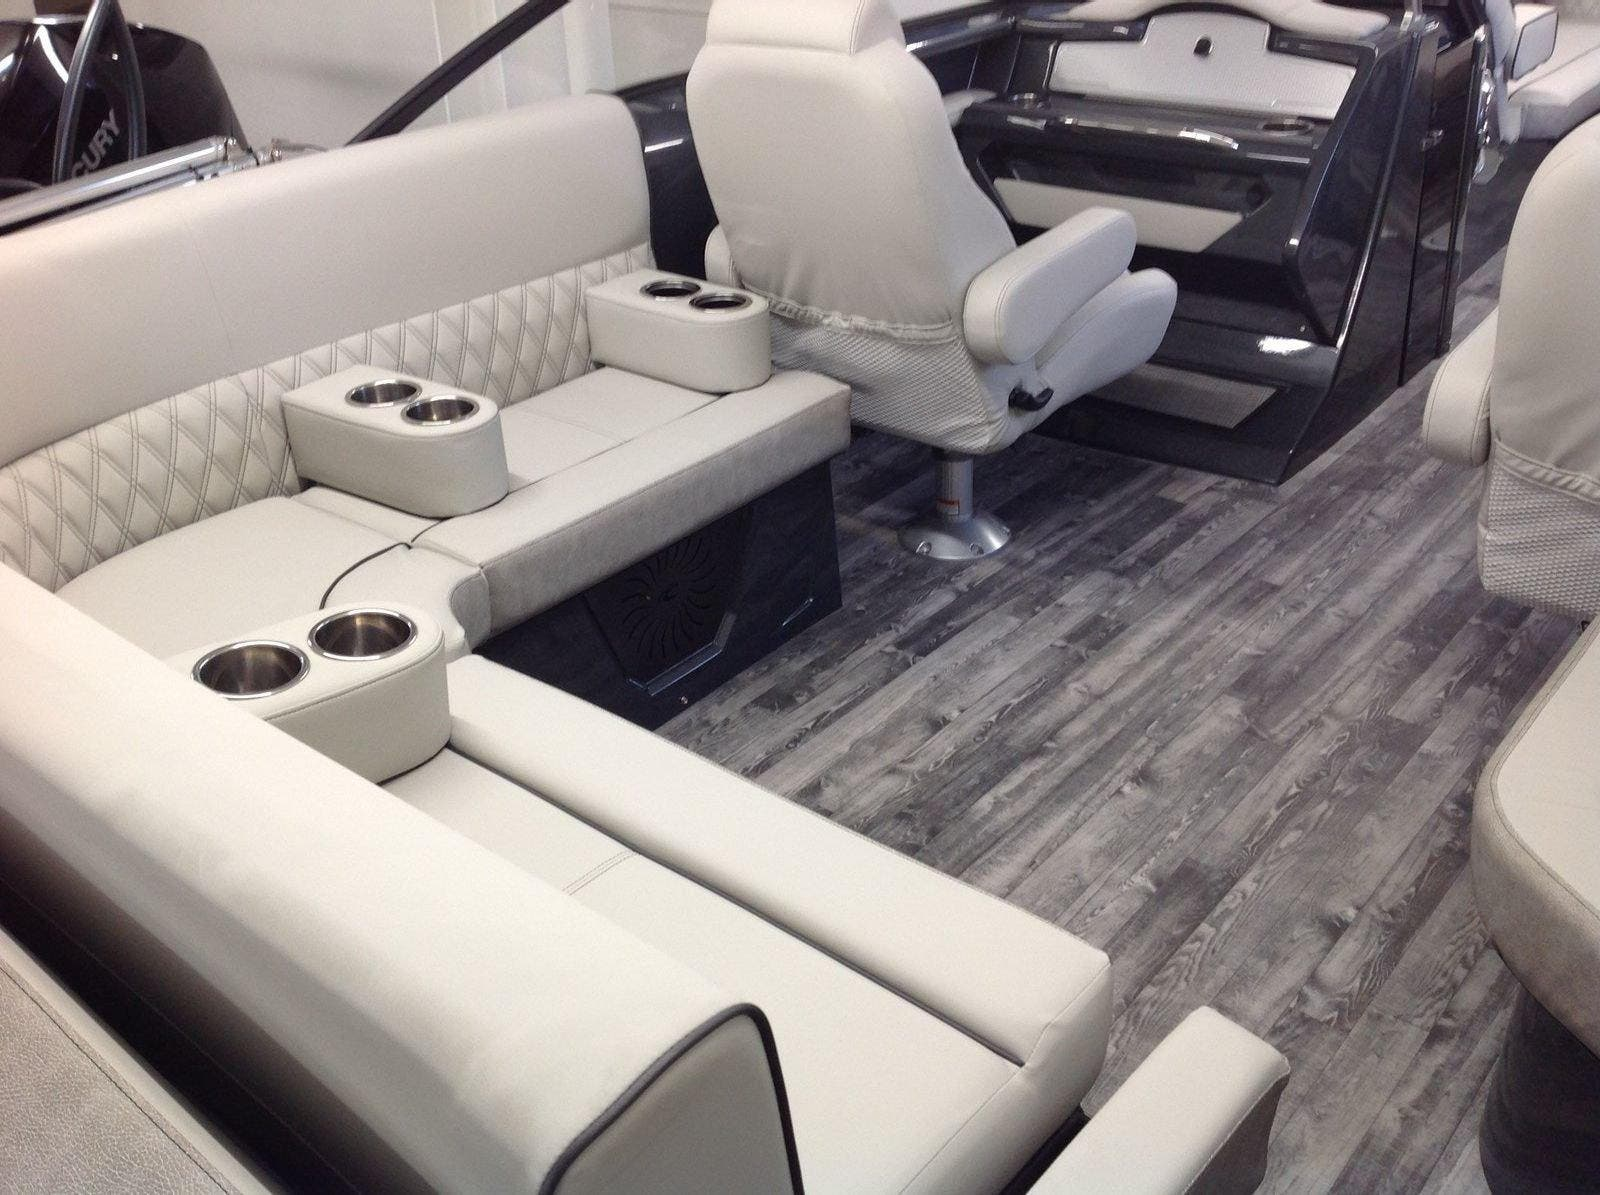 2020 Crest boat for sale, model of the boat is Continental 270sls & Image # 5 of 15